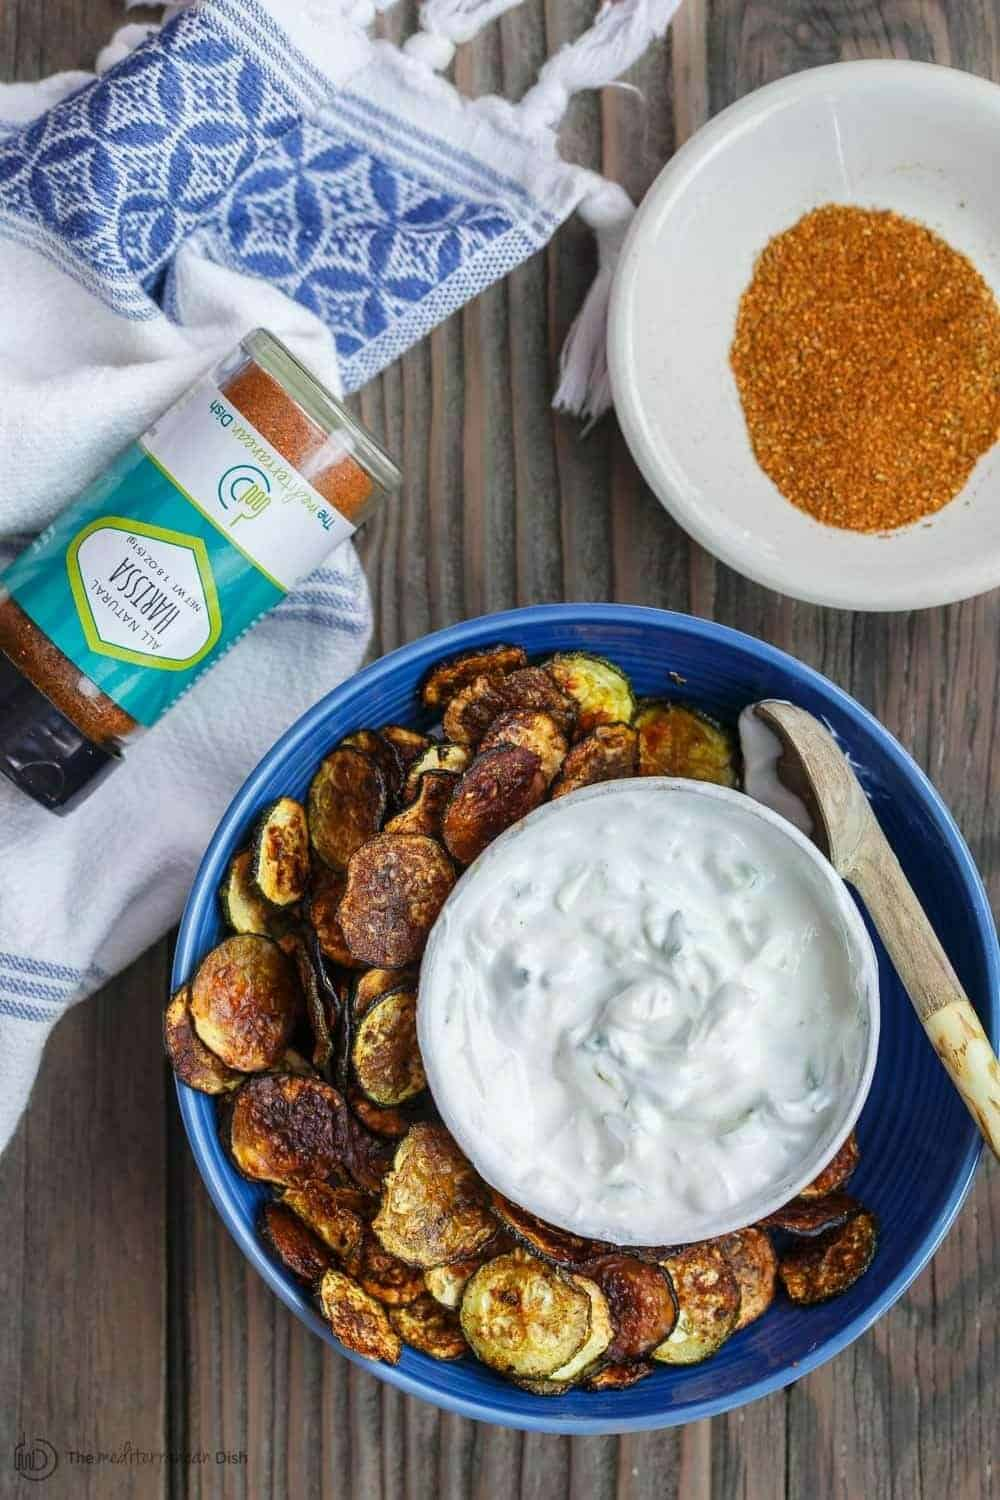 Zucchini Chips with a bowl of Harissa spice blend served on the side with Greek Tzatziki Dip